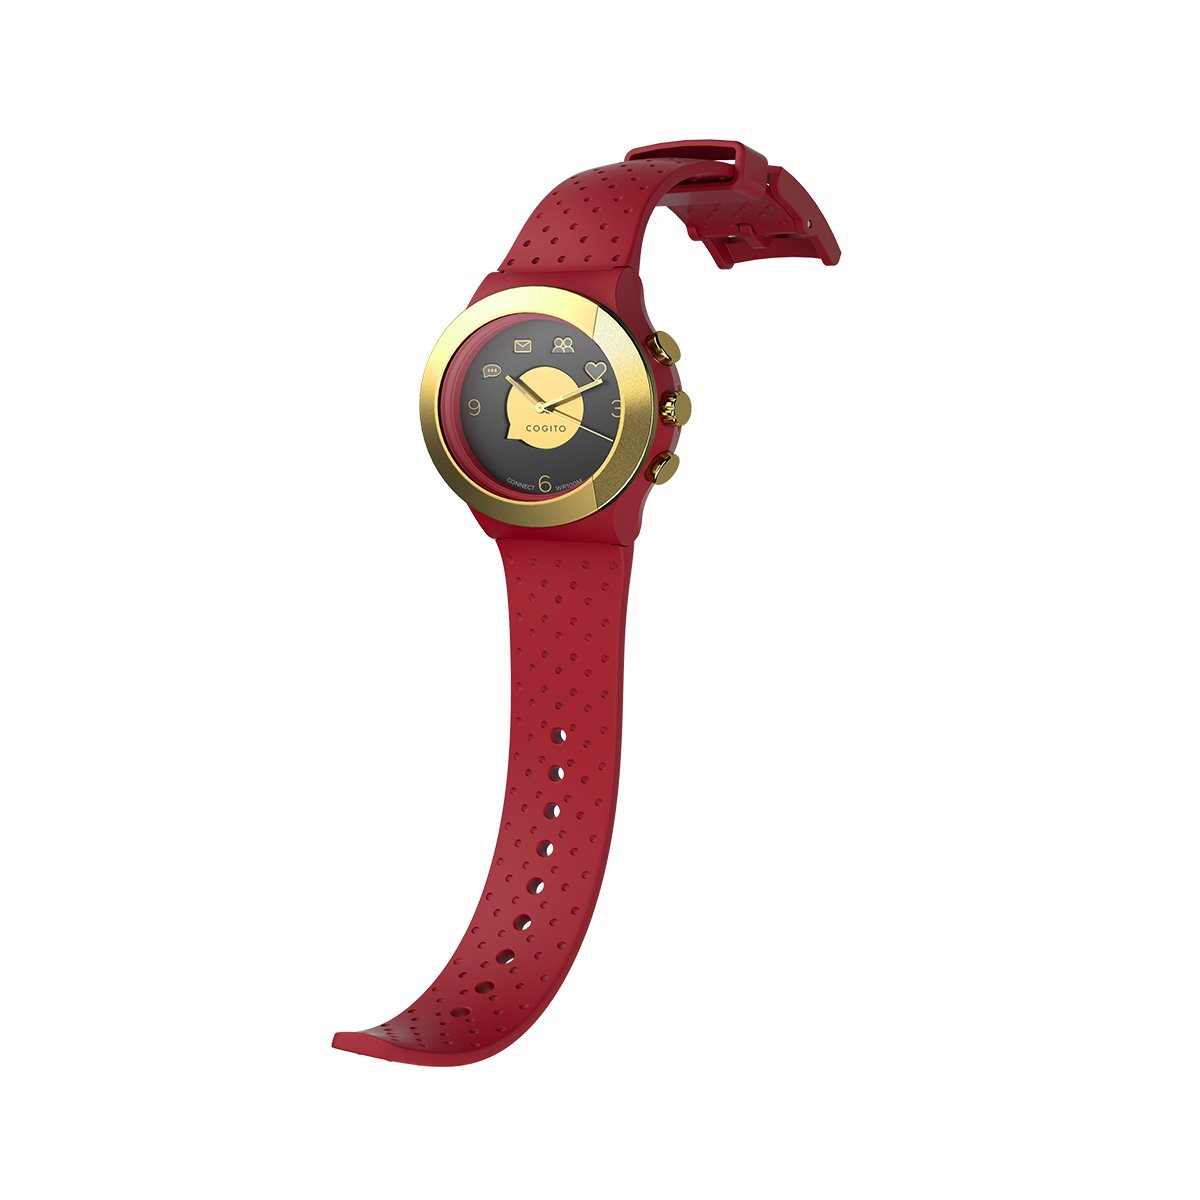 Cogito FIT - Smartwatch con Bluetooth, color rojo y ora ...